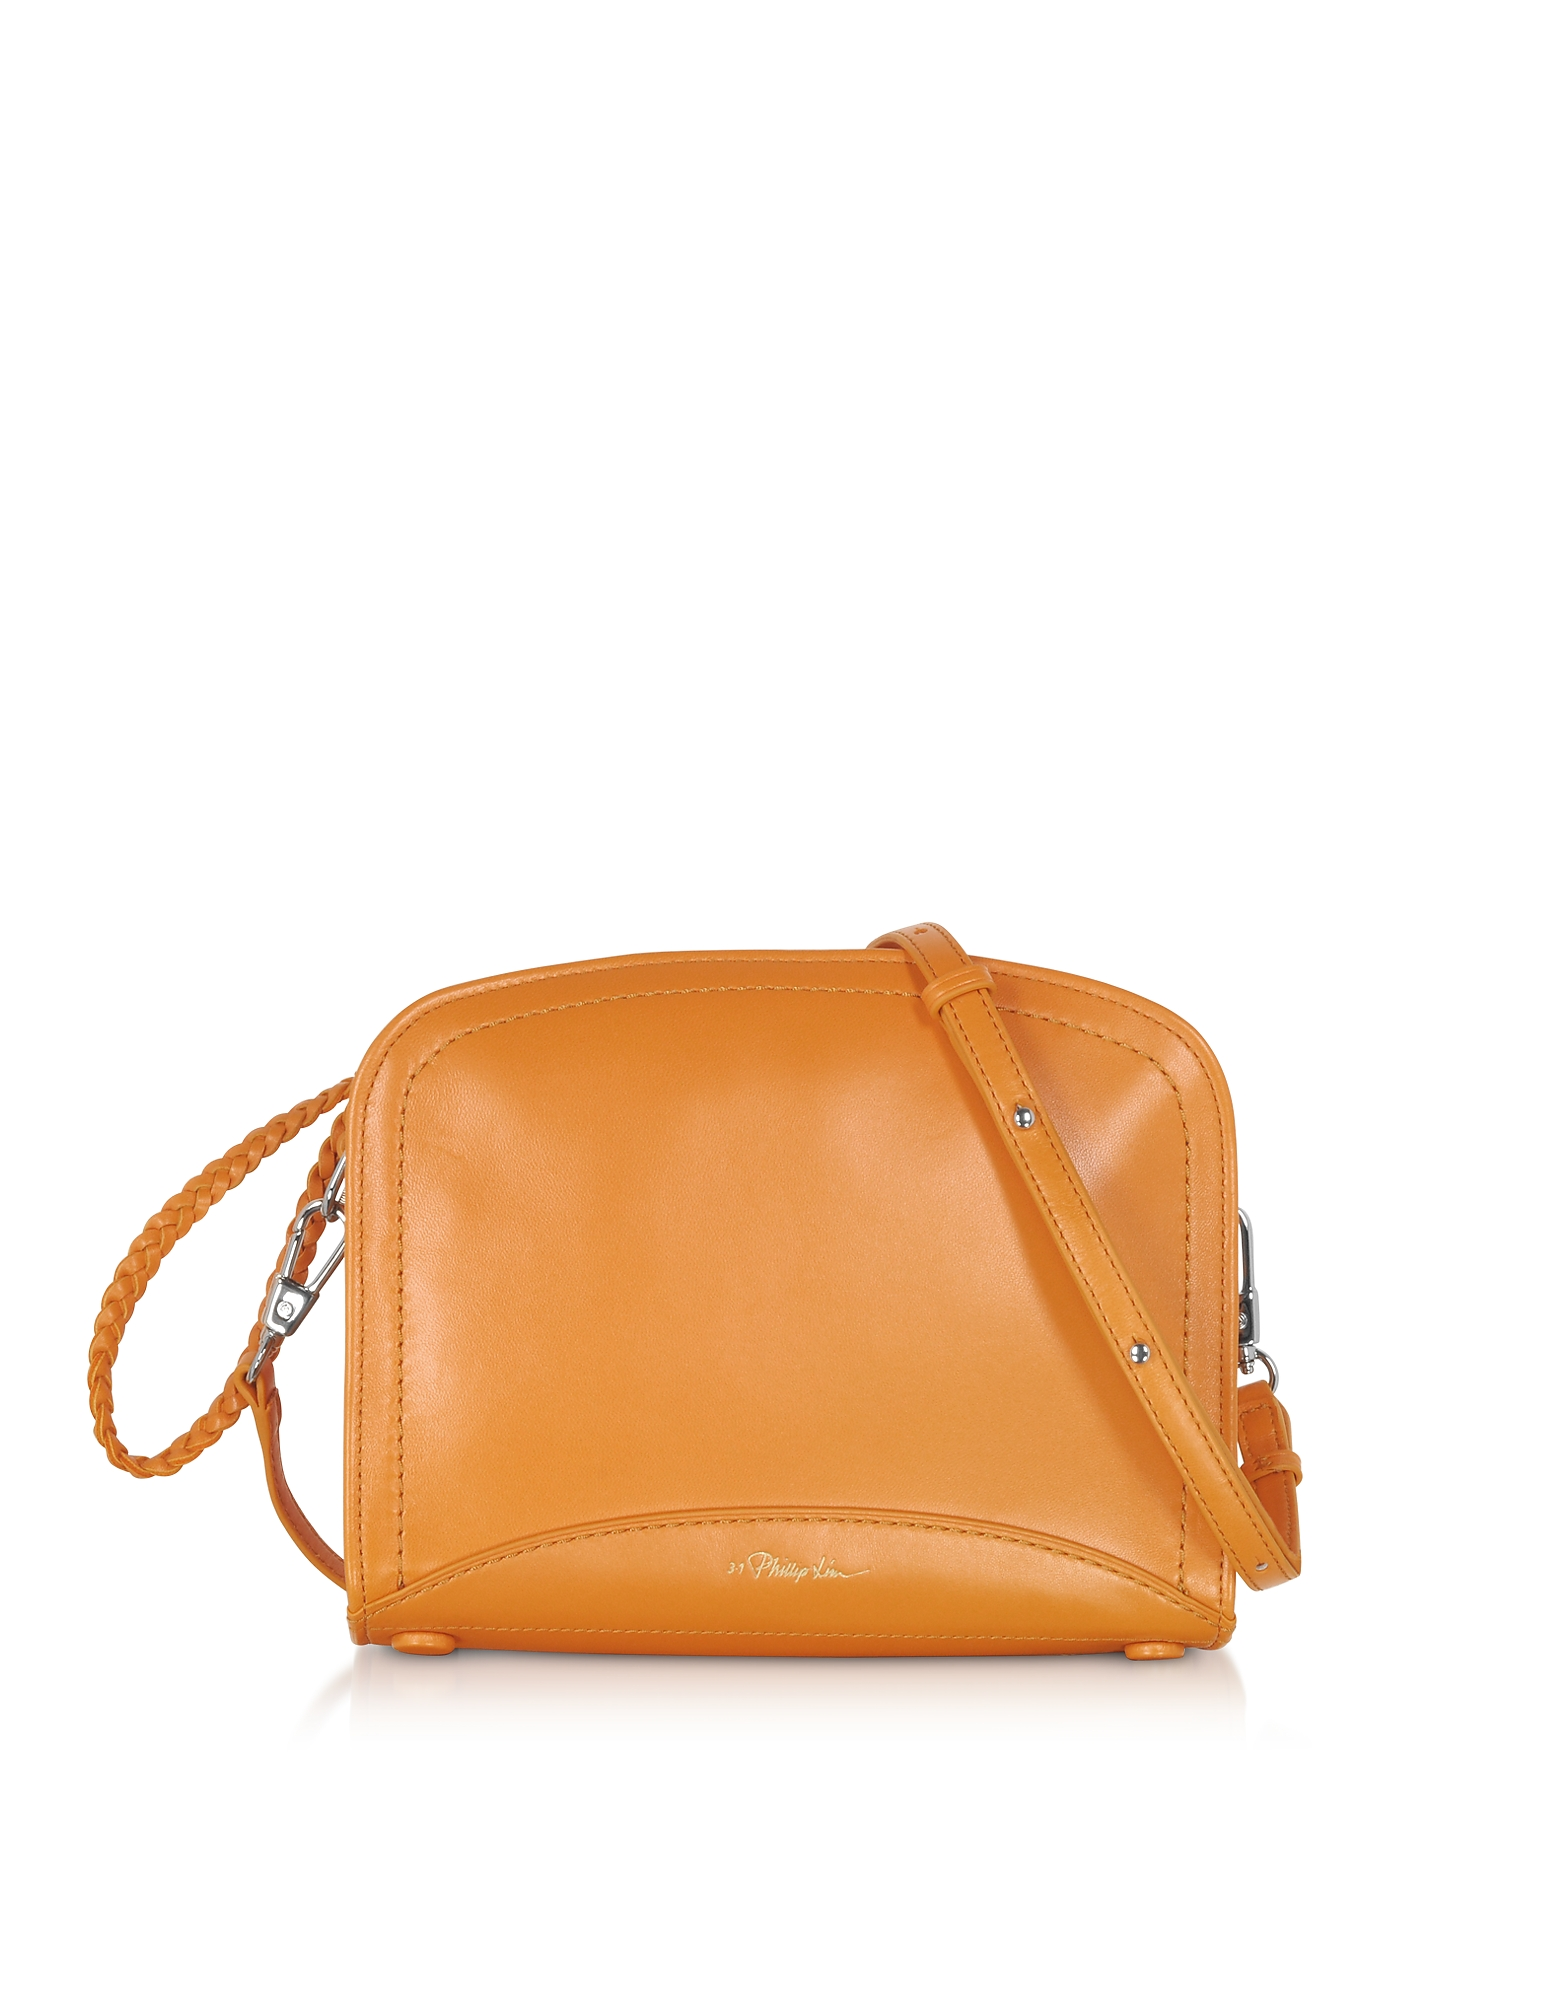 Hudson Small Rectangle Crossbody Bag, Saffron